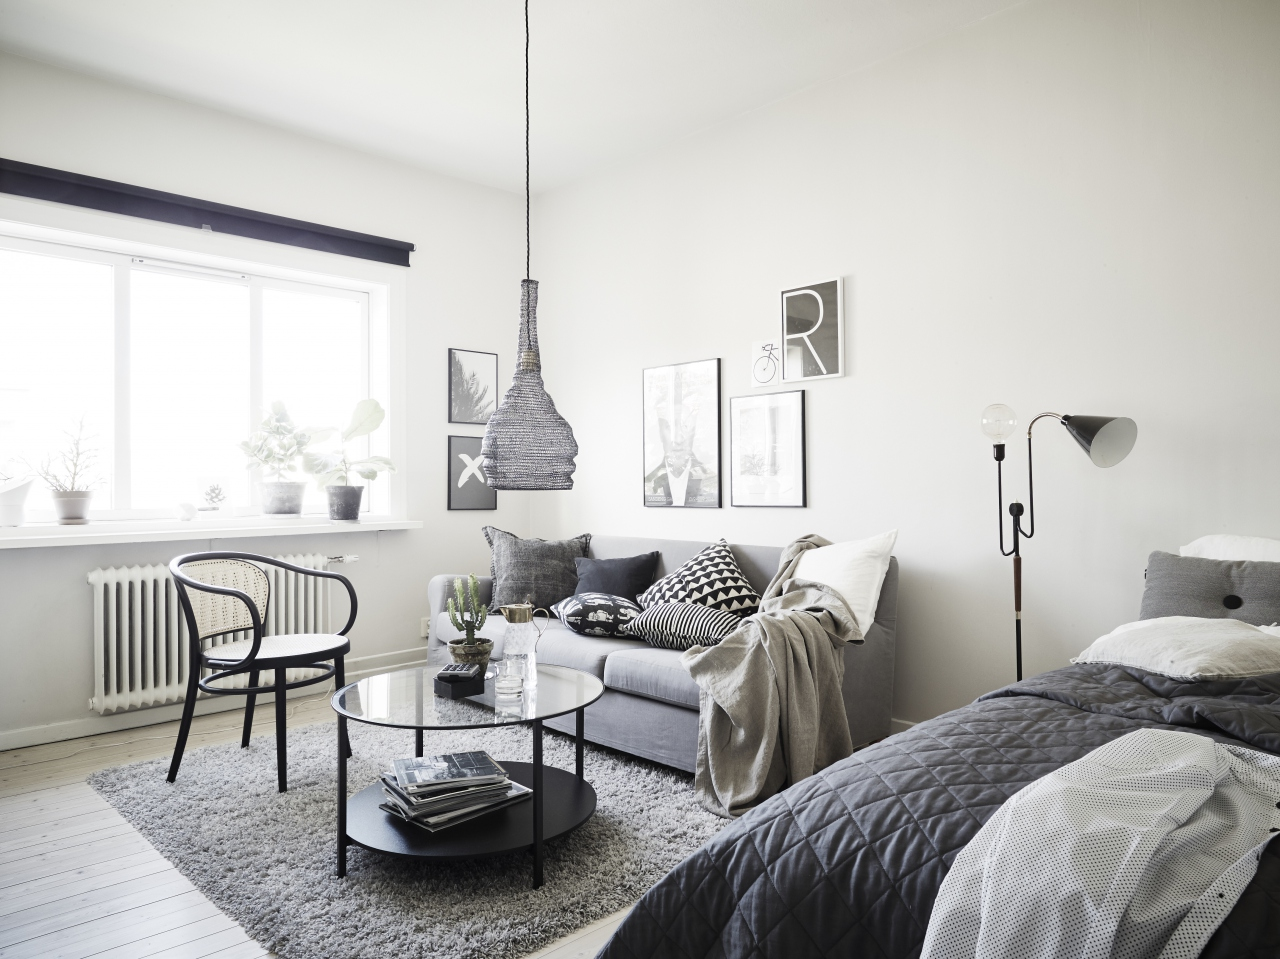 Beautiful home in grey coco lapine designcoco lapine design for One room apartment design